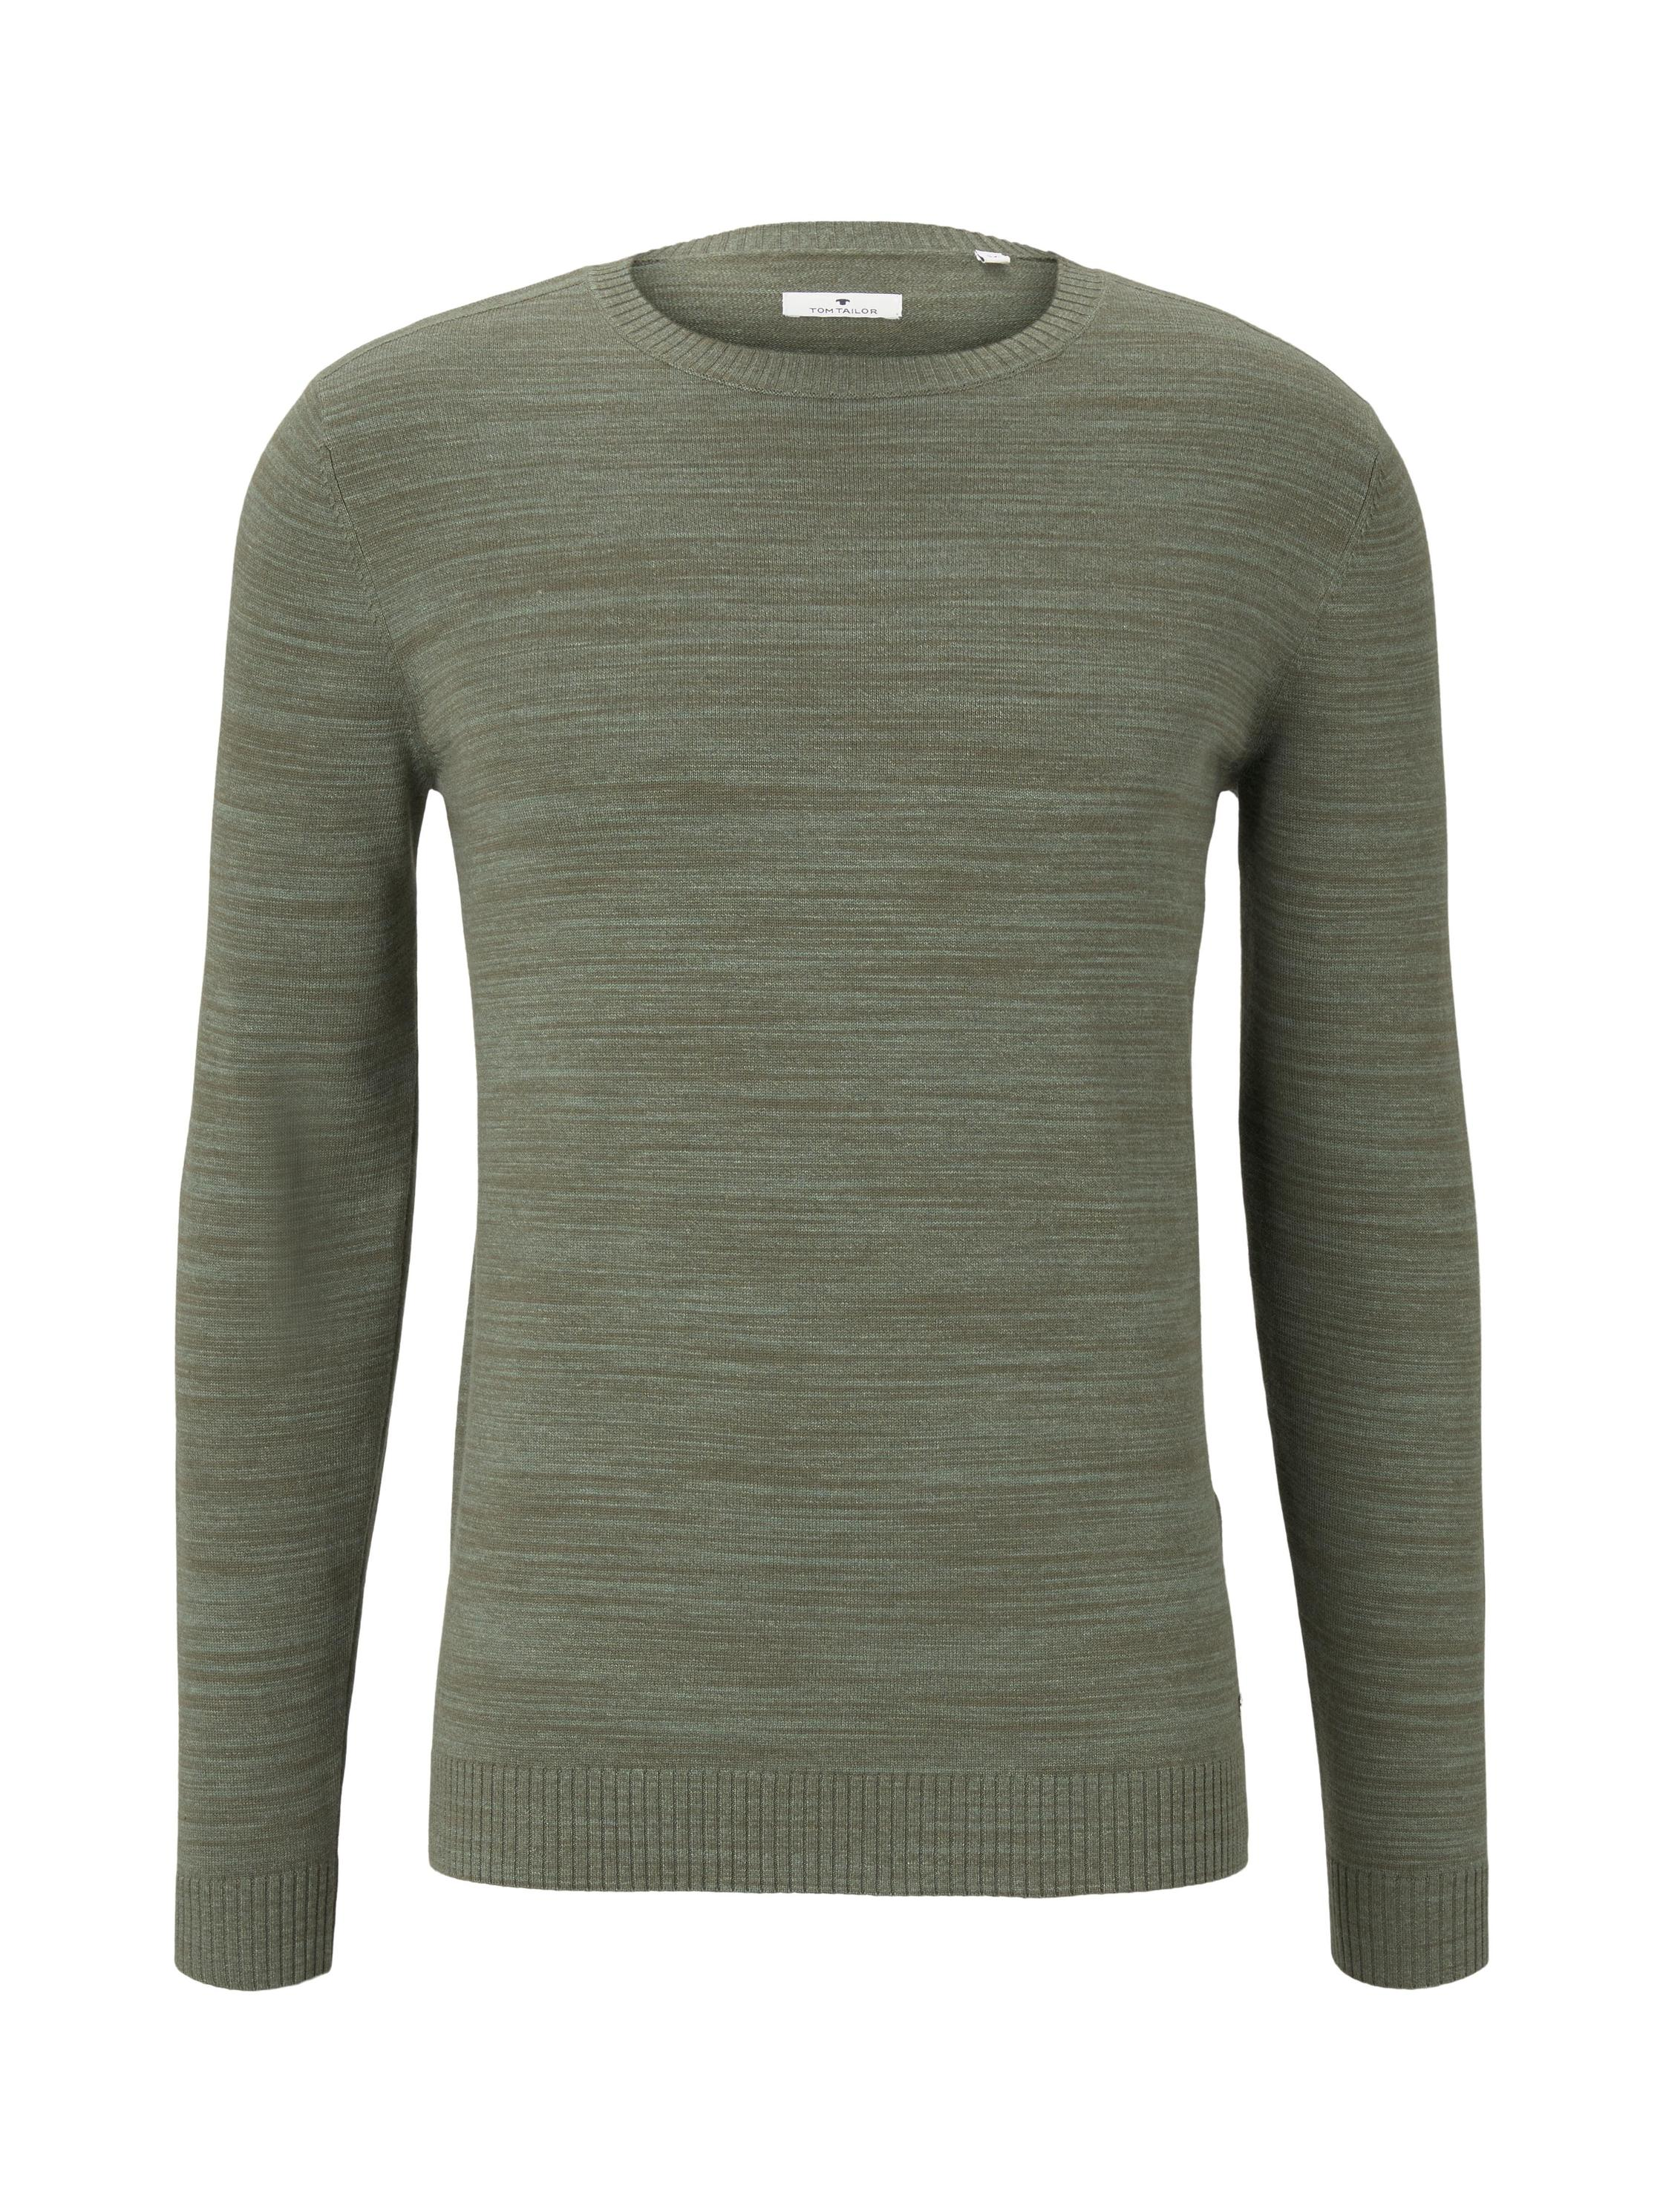 fine knitted sweater, pale green olive heather yarn